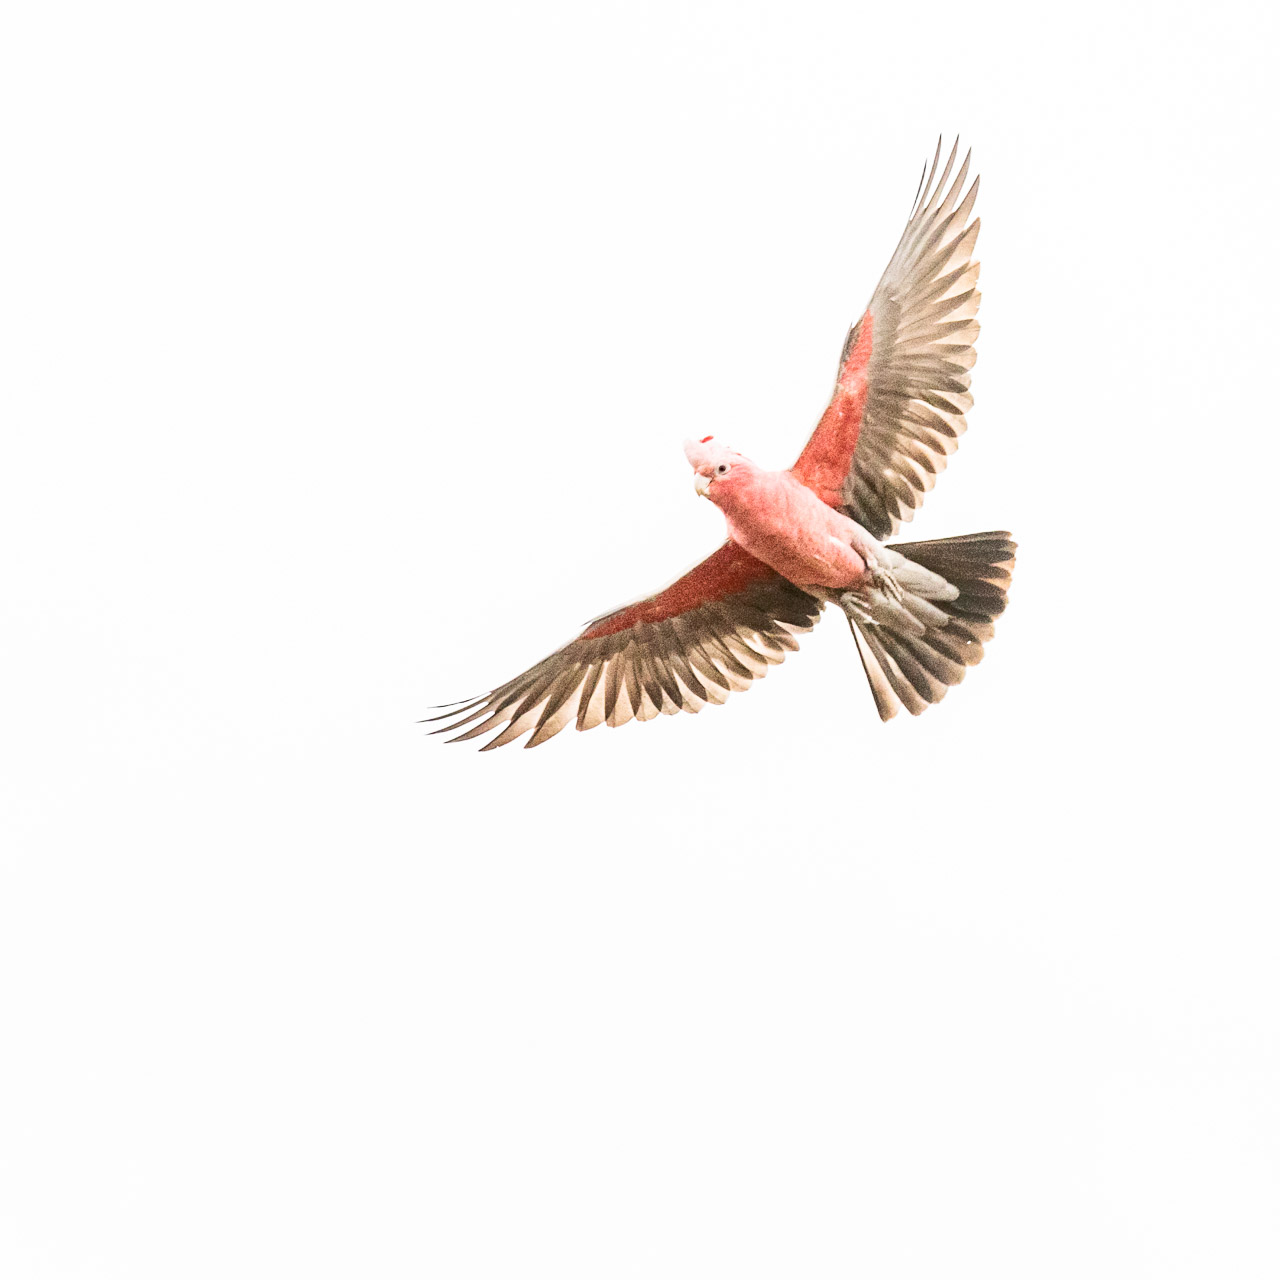 Galah in flight with wings spread